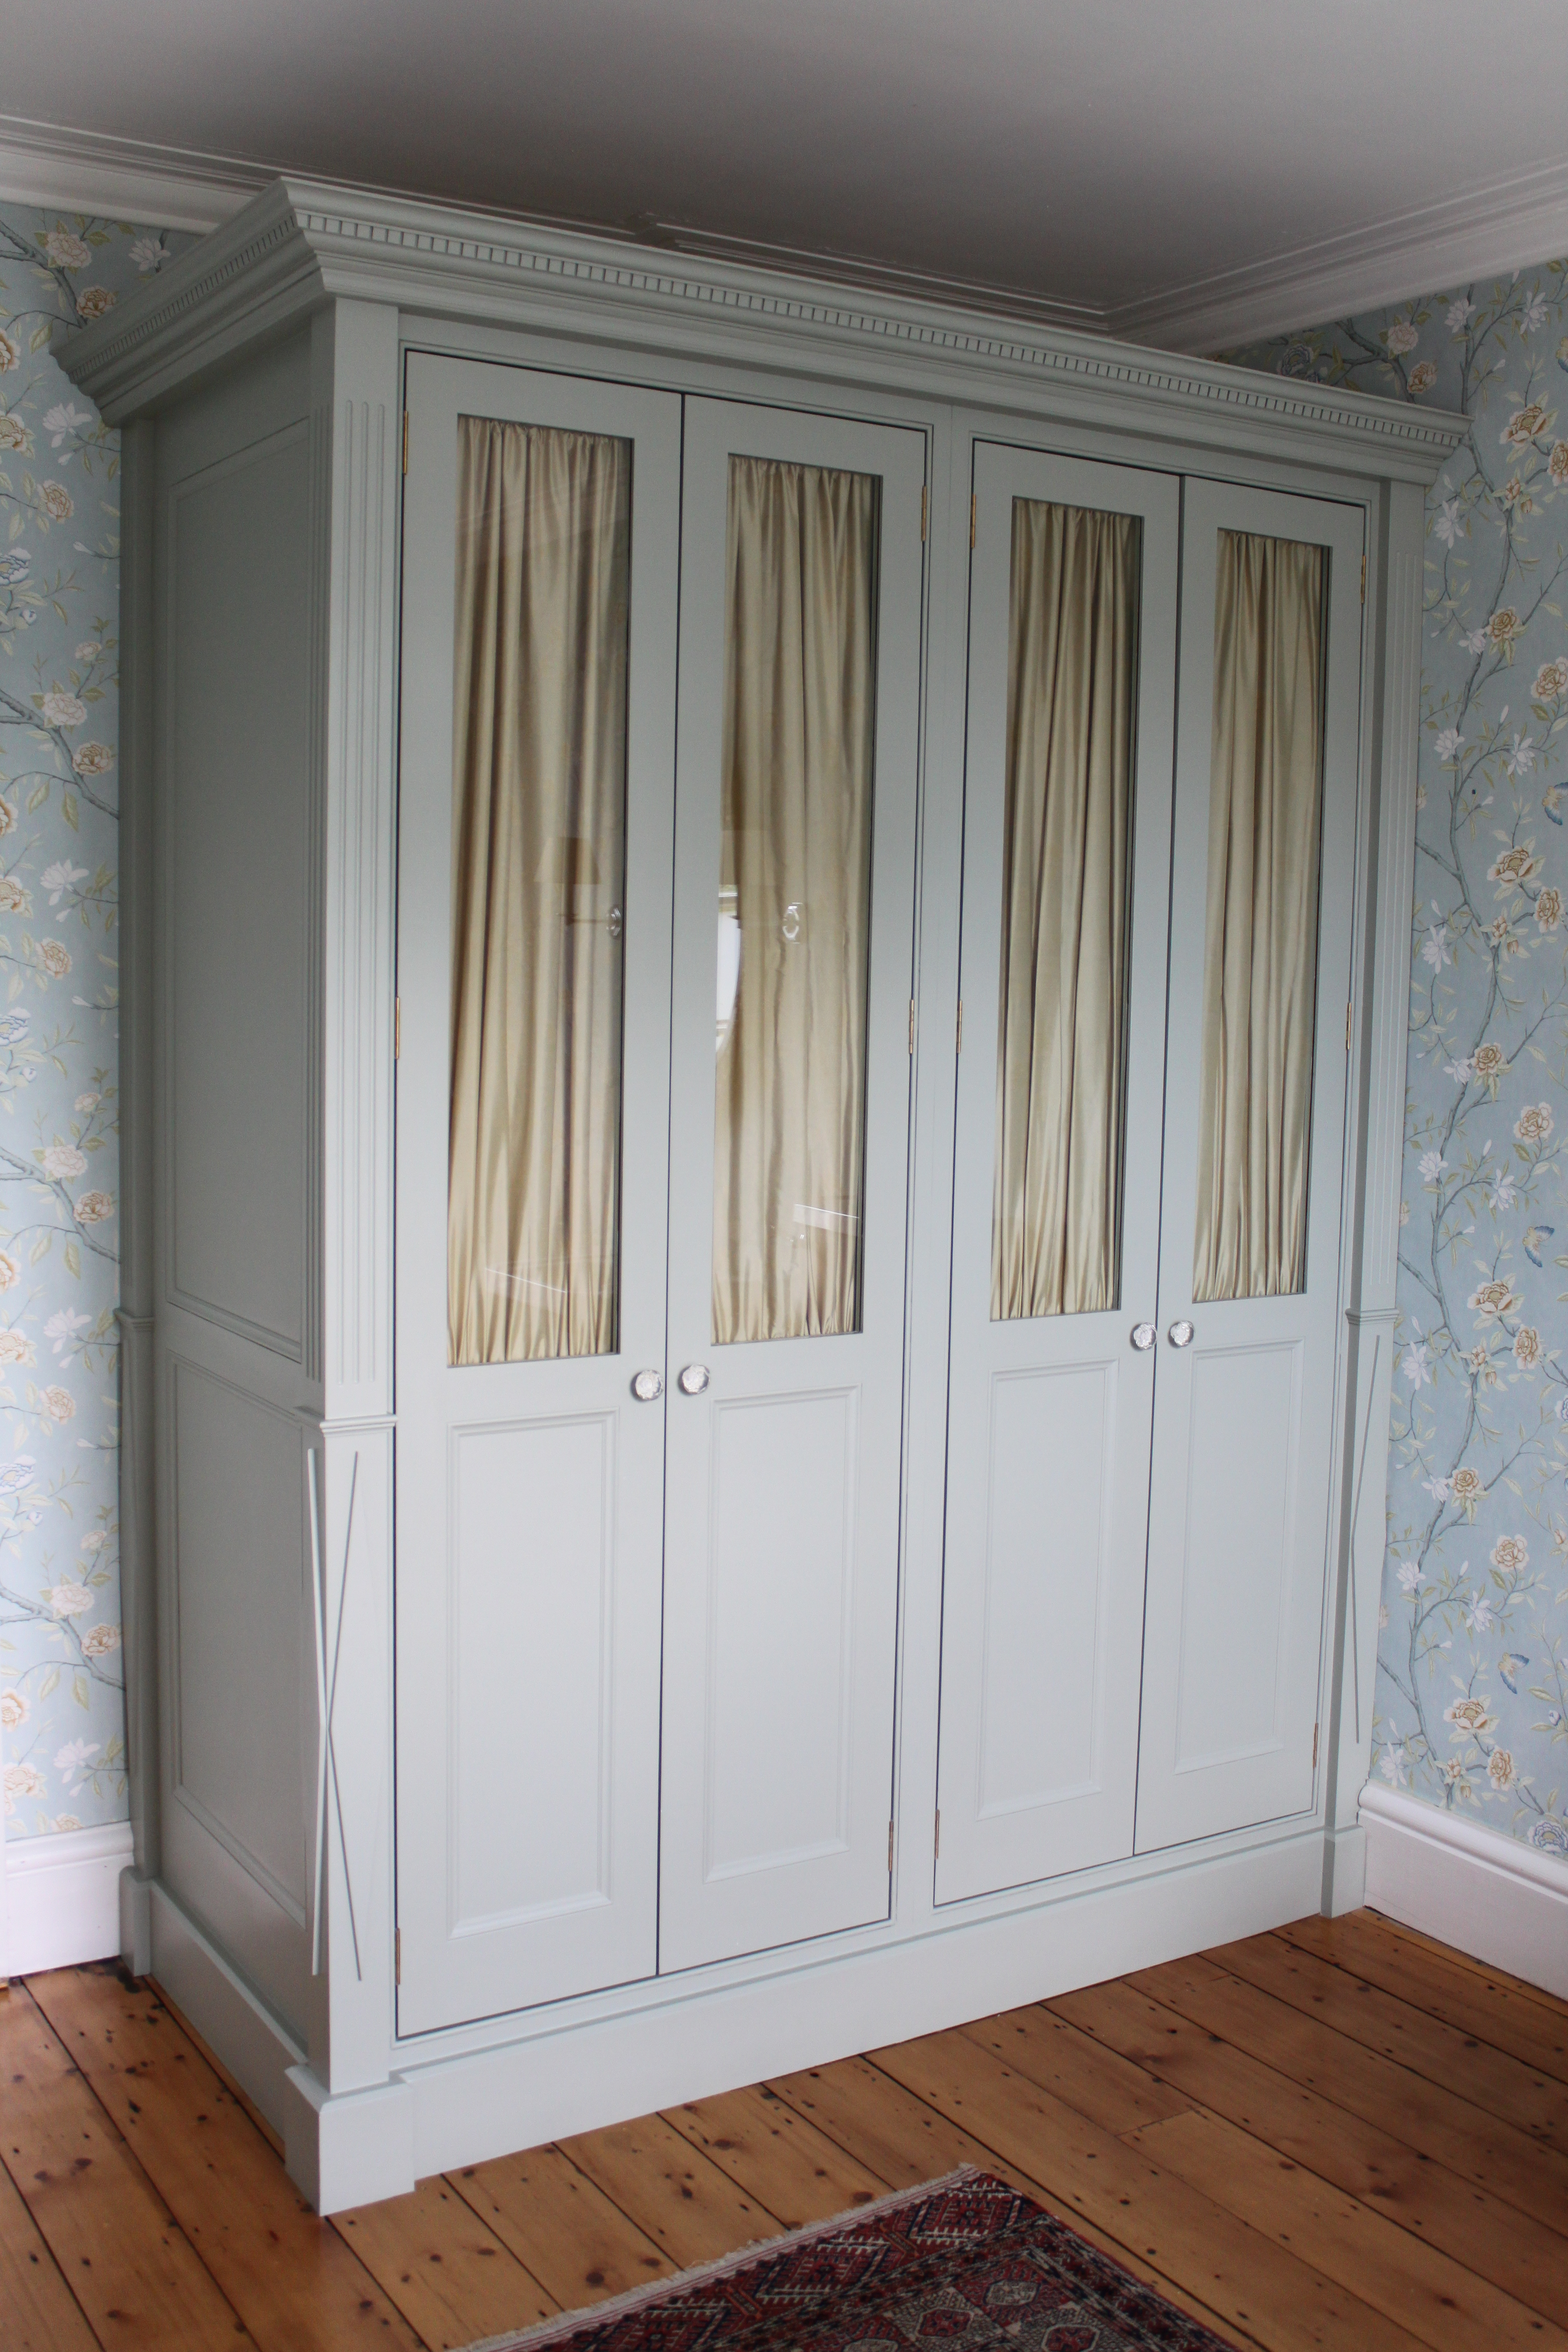 Amazing photo of airing cupboard airing cupboard cornice plaster detail for airing  with #684430 color and 3168x4752 pixels